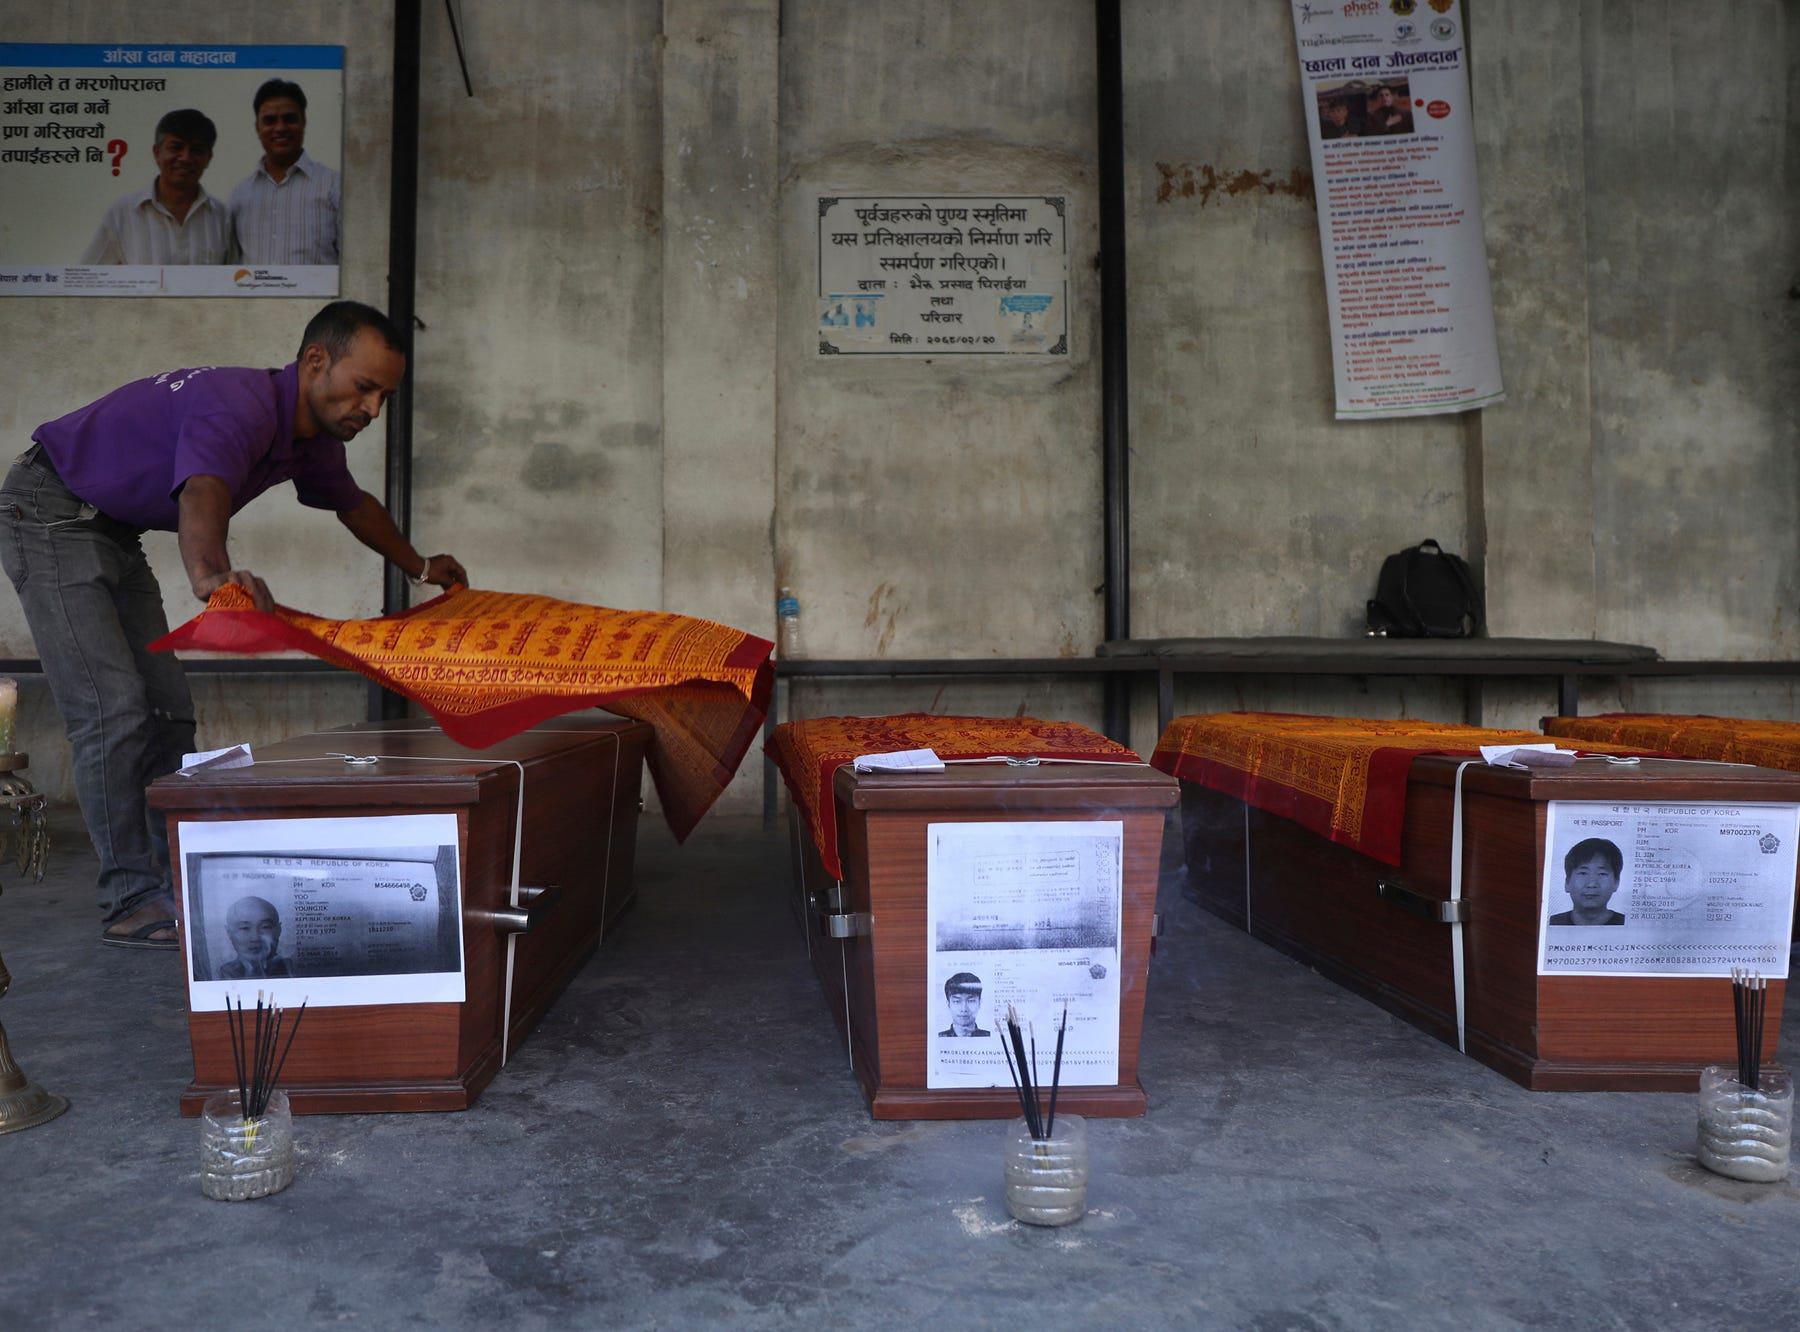 A man offers sacred scarves on coffins containing bodies of South Korean climbers killed over the weekend in a fierce storm on Nepal's Gurja Himal mountain after theywere brought to the Tribhuvan University Teaching Hospital in Kathmandu, Nepal, Tuesday, Oct. 16, 2018. The bodies were driven to the airport and were set to be flown to Seoul, South Korea's capital, later Tuesday. The bodies of five South Korean climbers are heading home amid calls to improve weather warning systems on Nepal's mountains. (AP Photo/Bikram Rai)